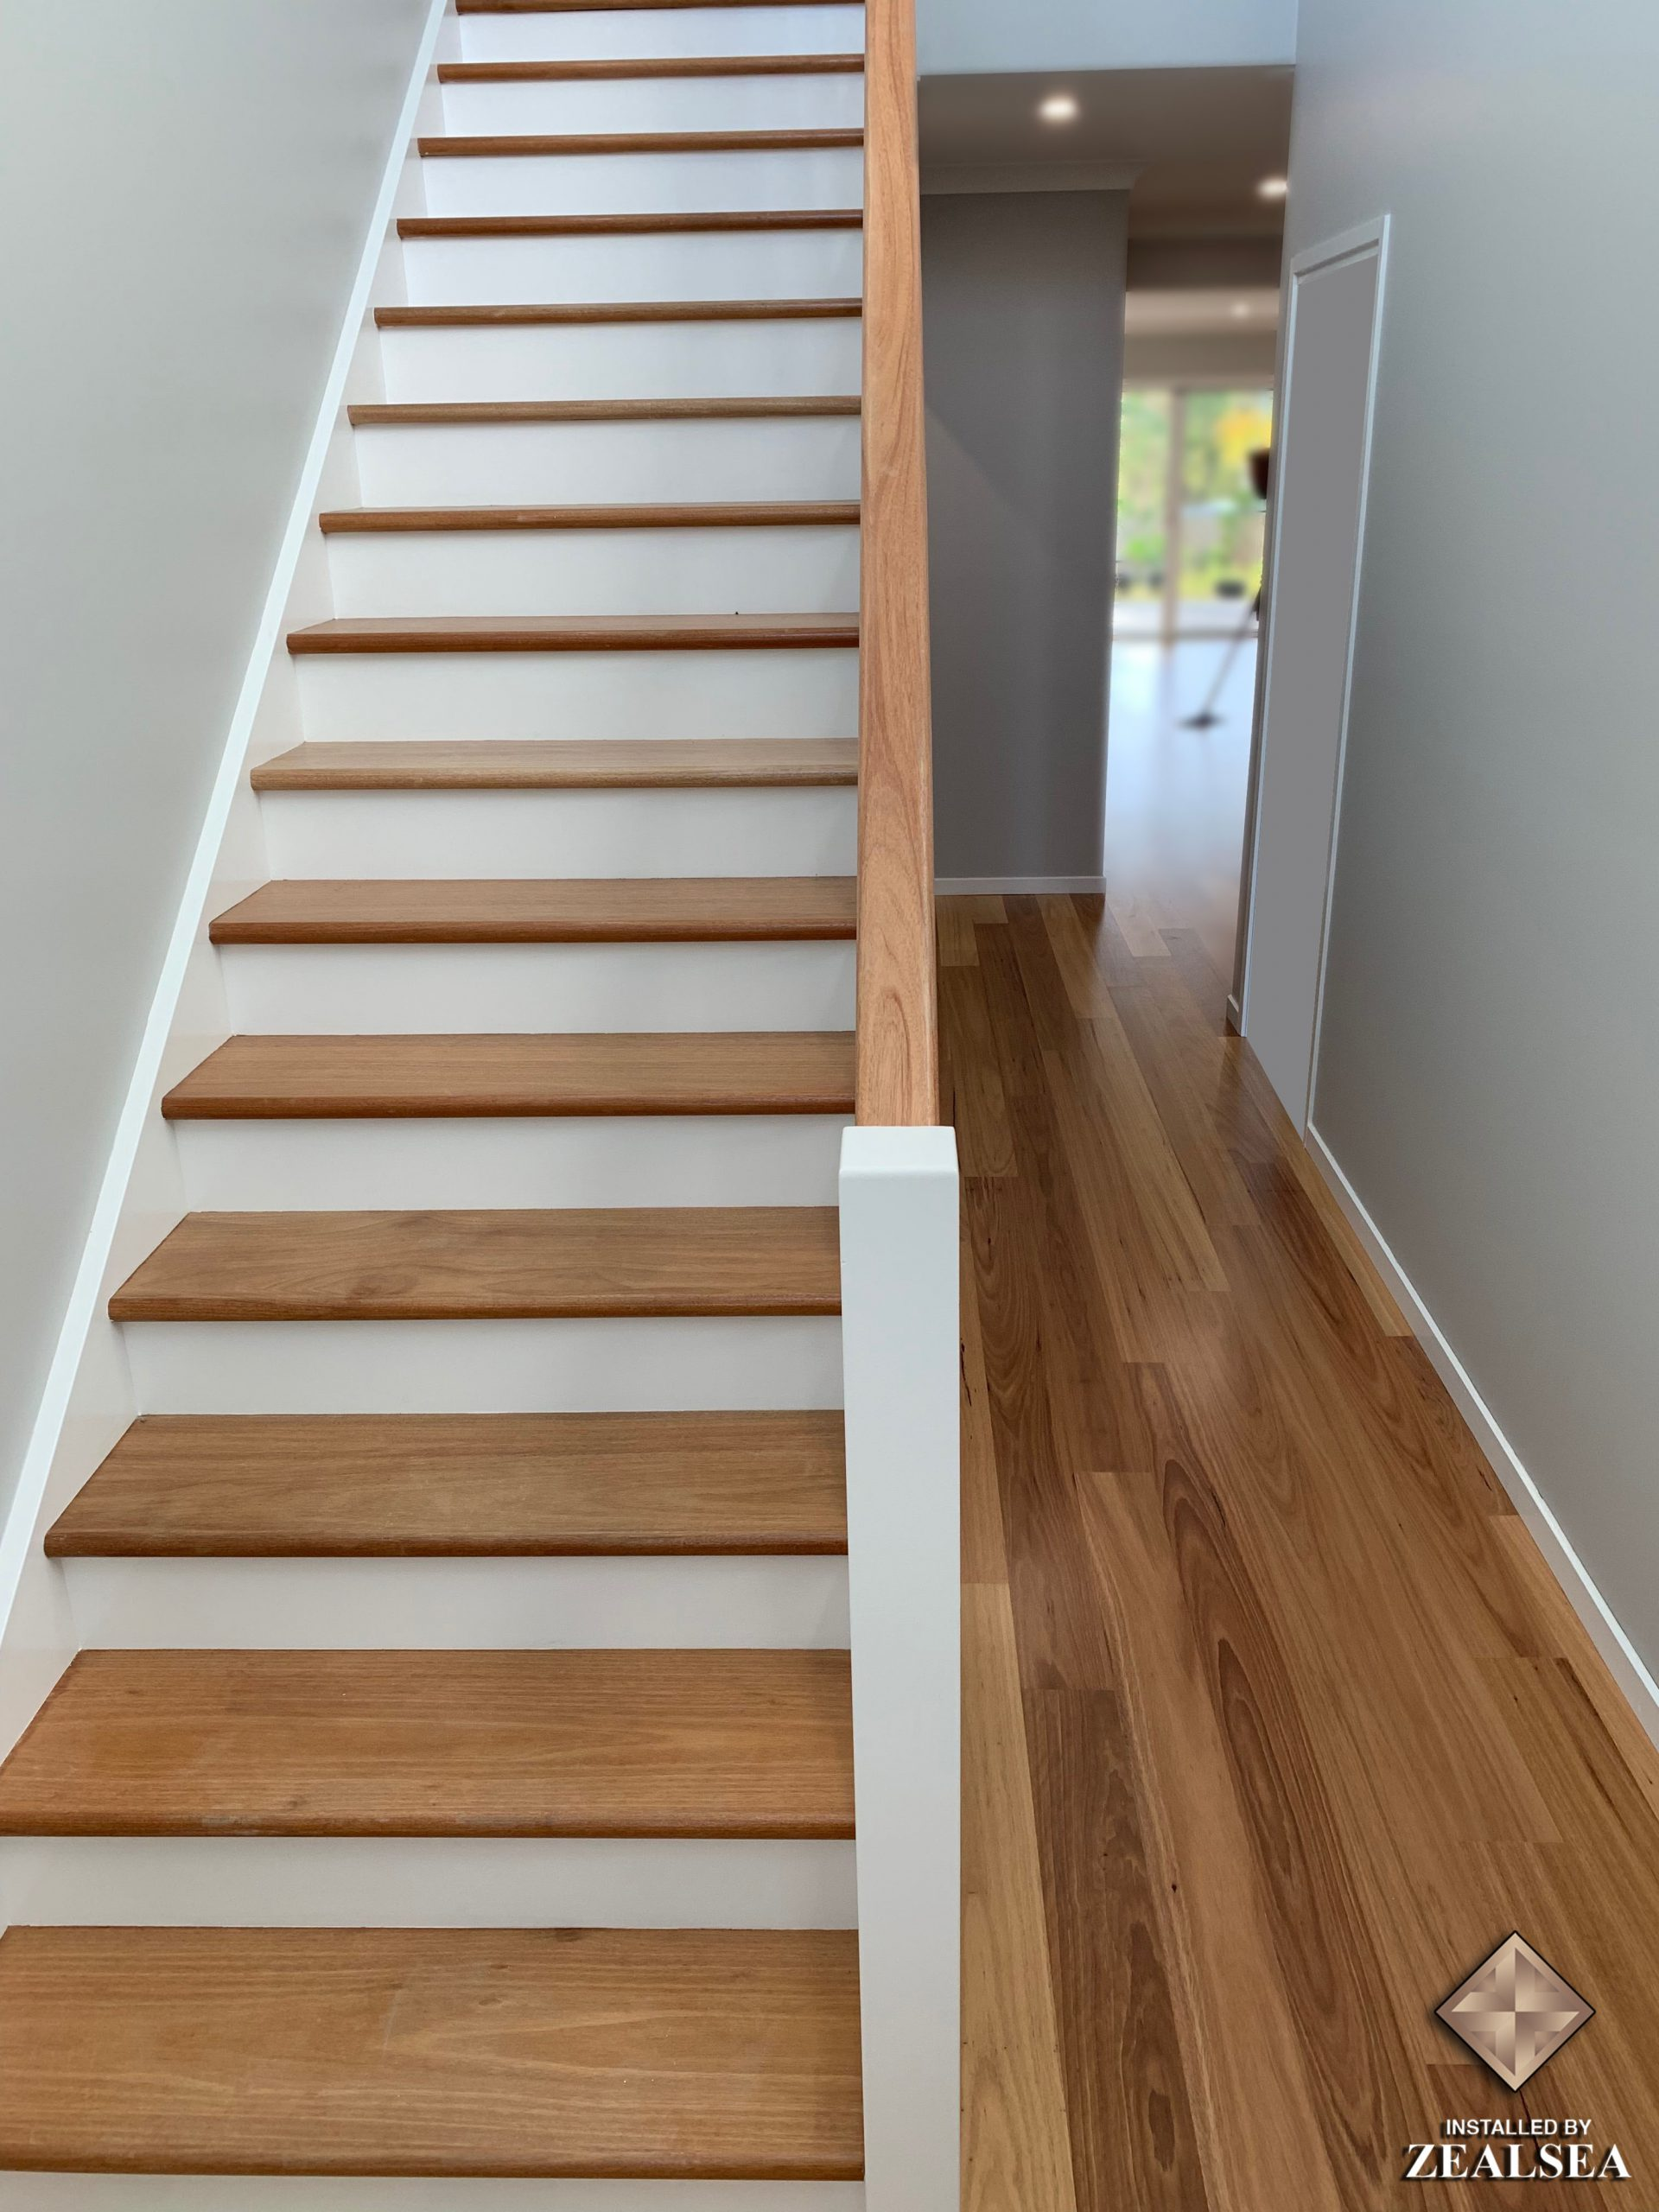 zealsea timber flooring professional installation oxley boral blackbutt 1 scaled